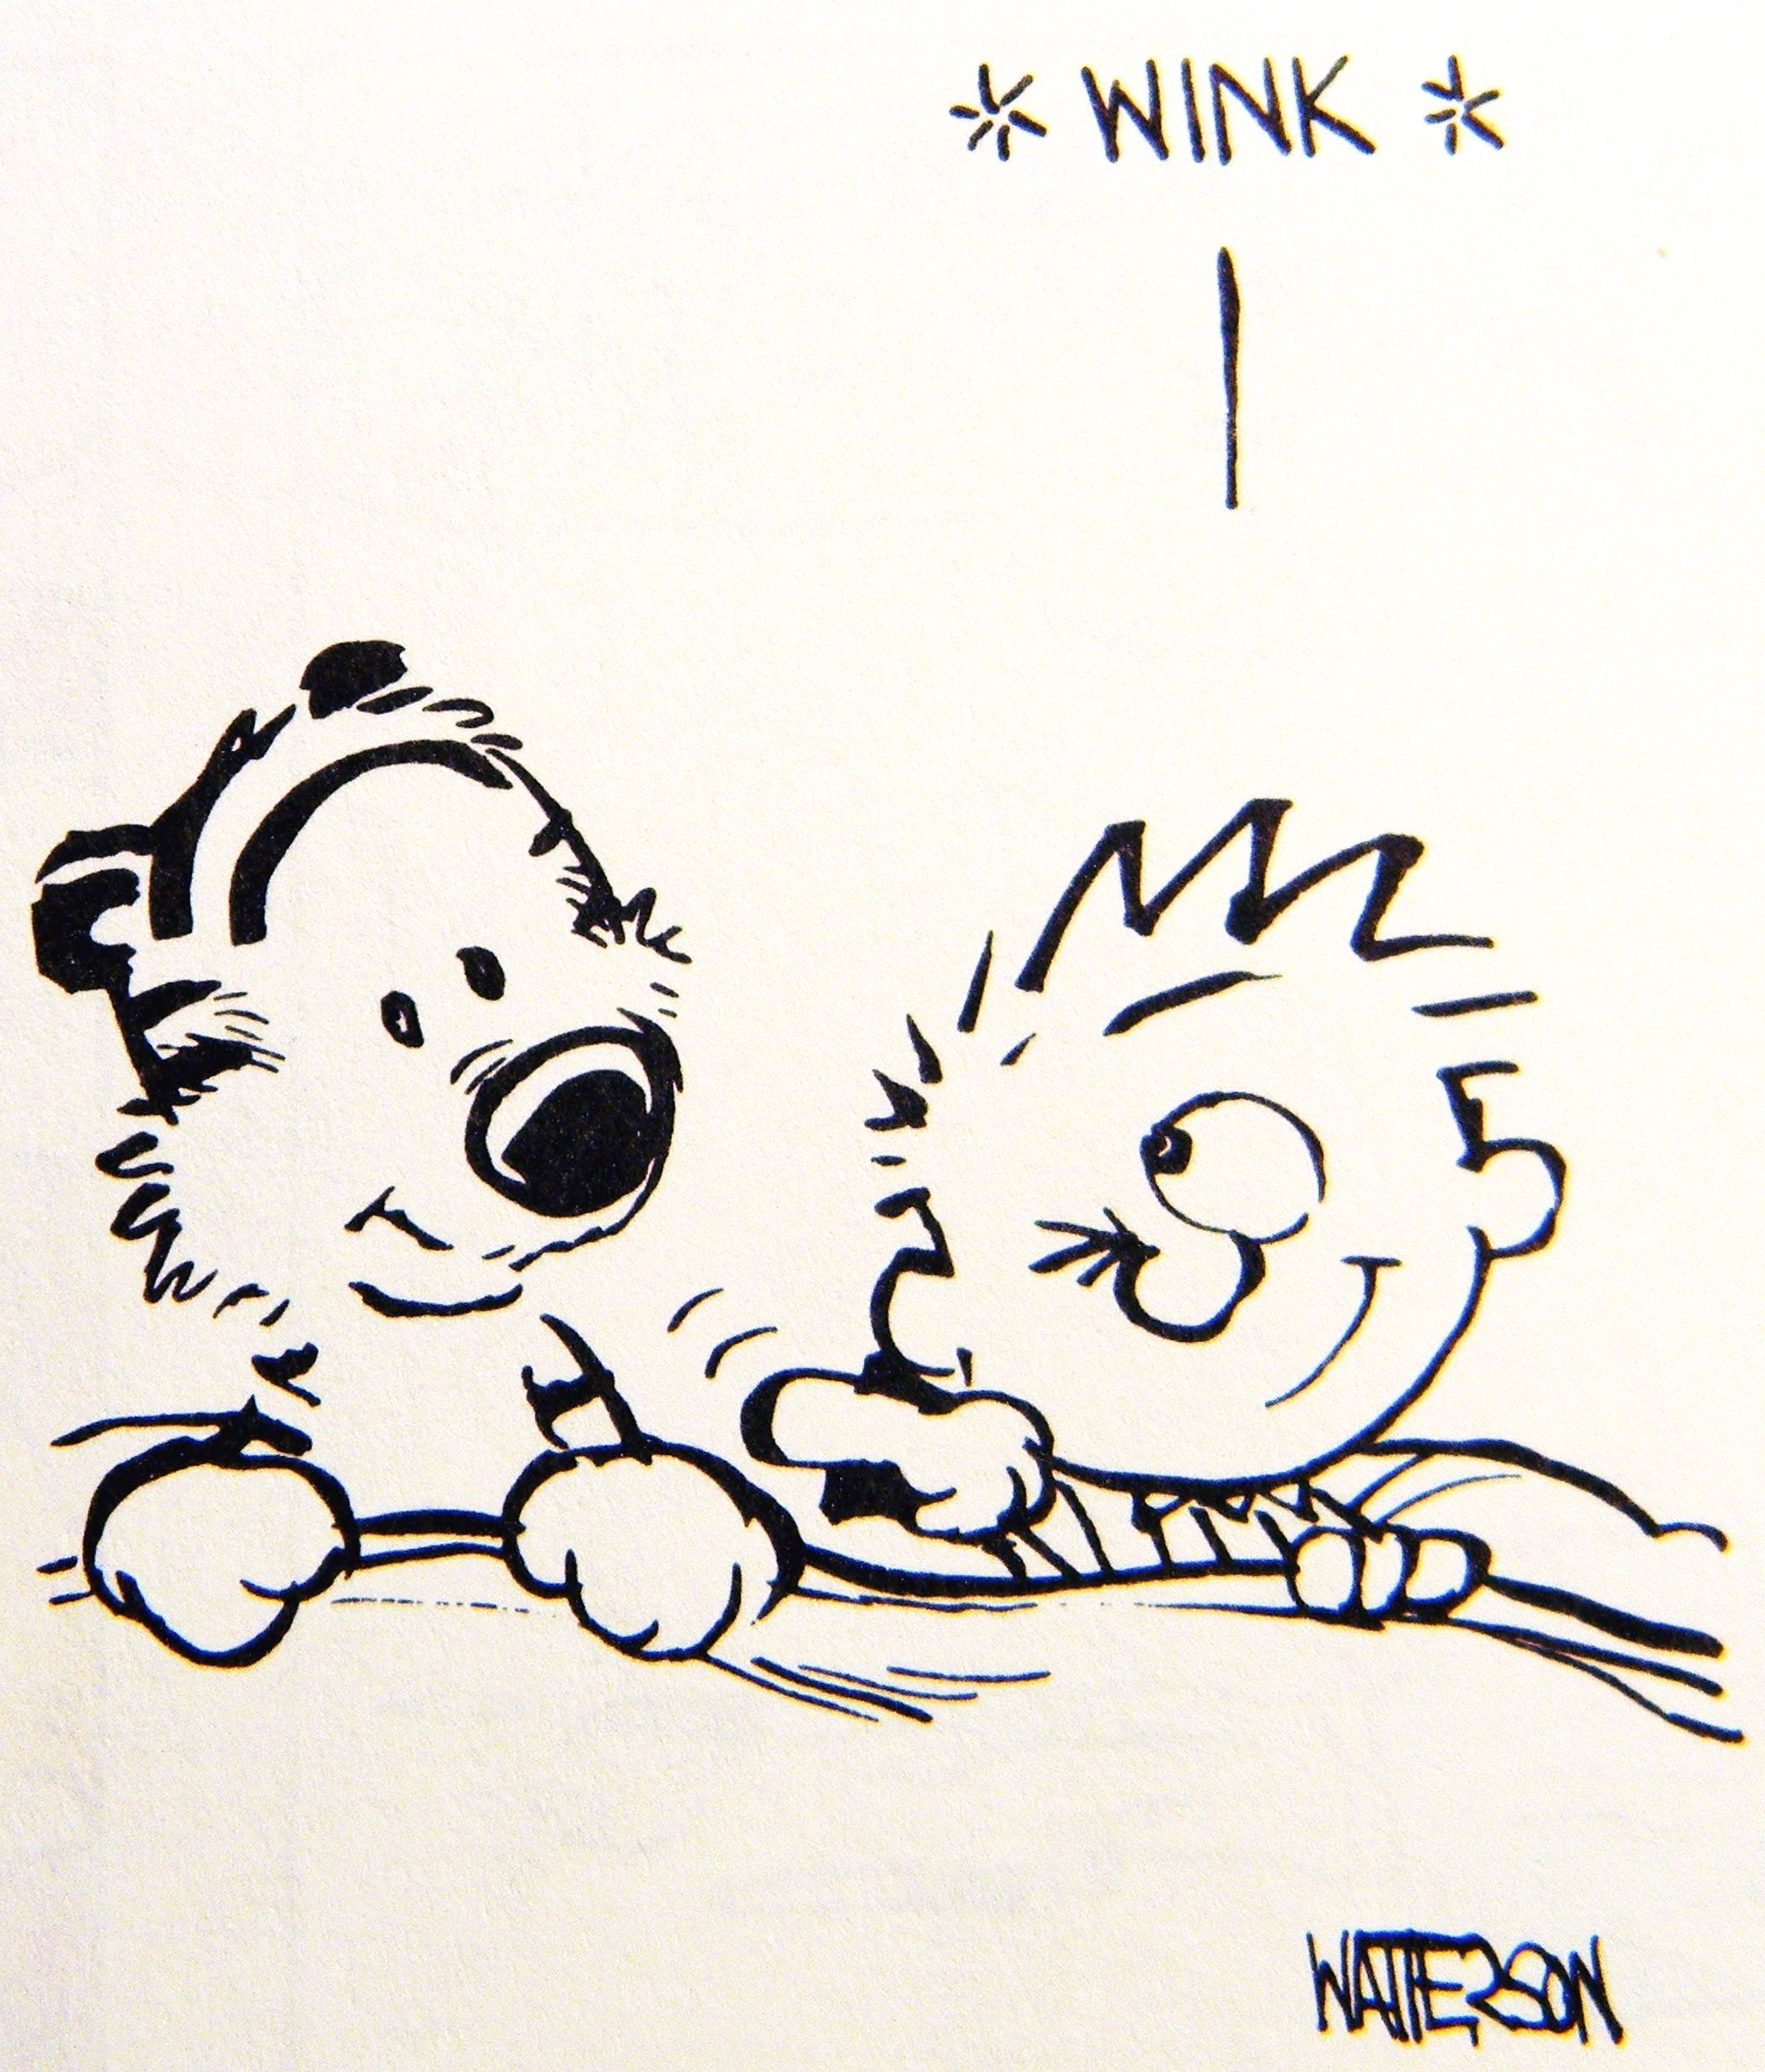 Calvin And Hobbes Wink Calvin And Hobbes Comics Calvin And Hobbes Calvin And Hobbes Tattoo